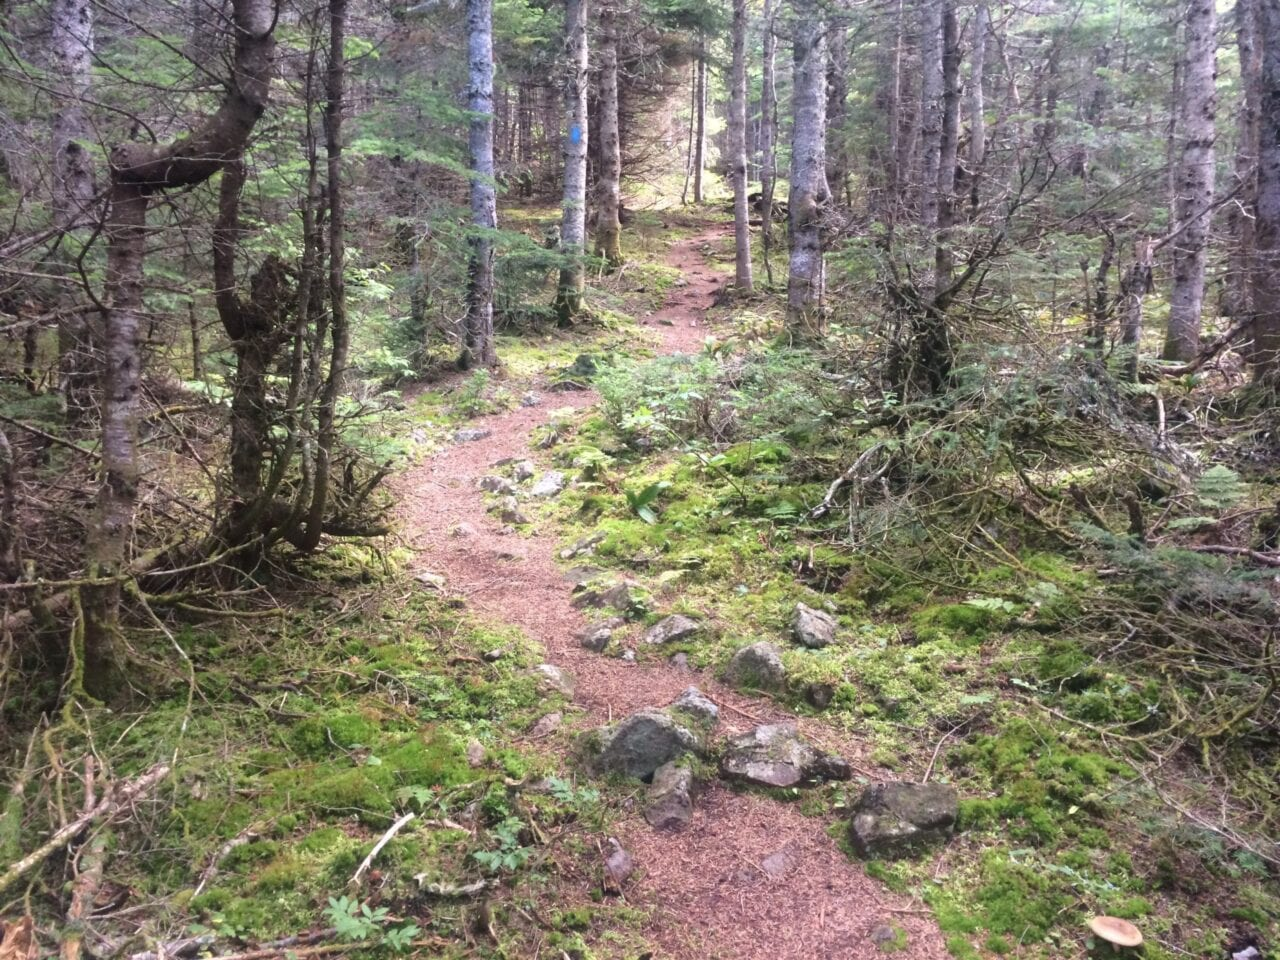 A dirt trail winds through a dense mossy forest.